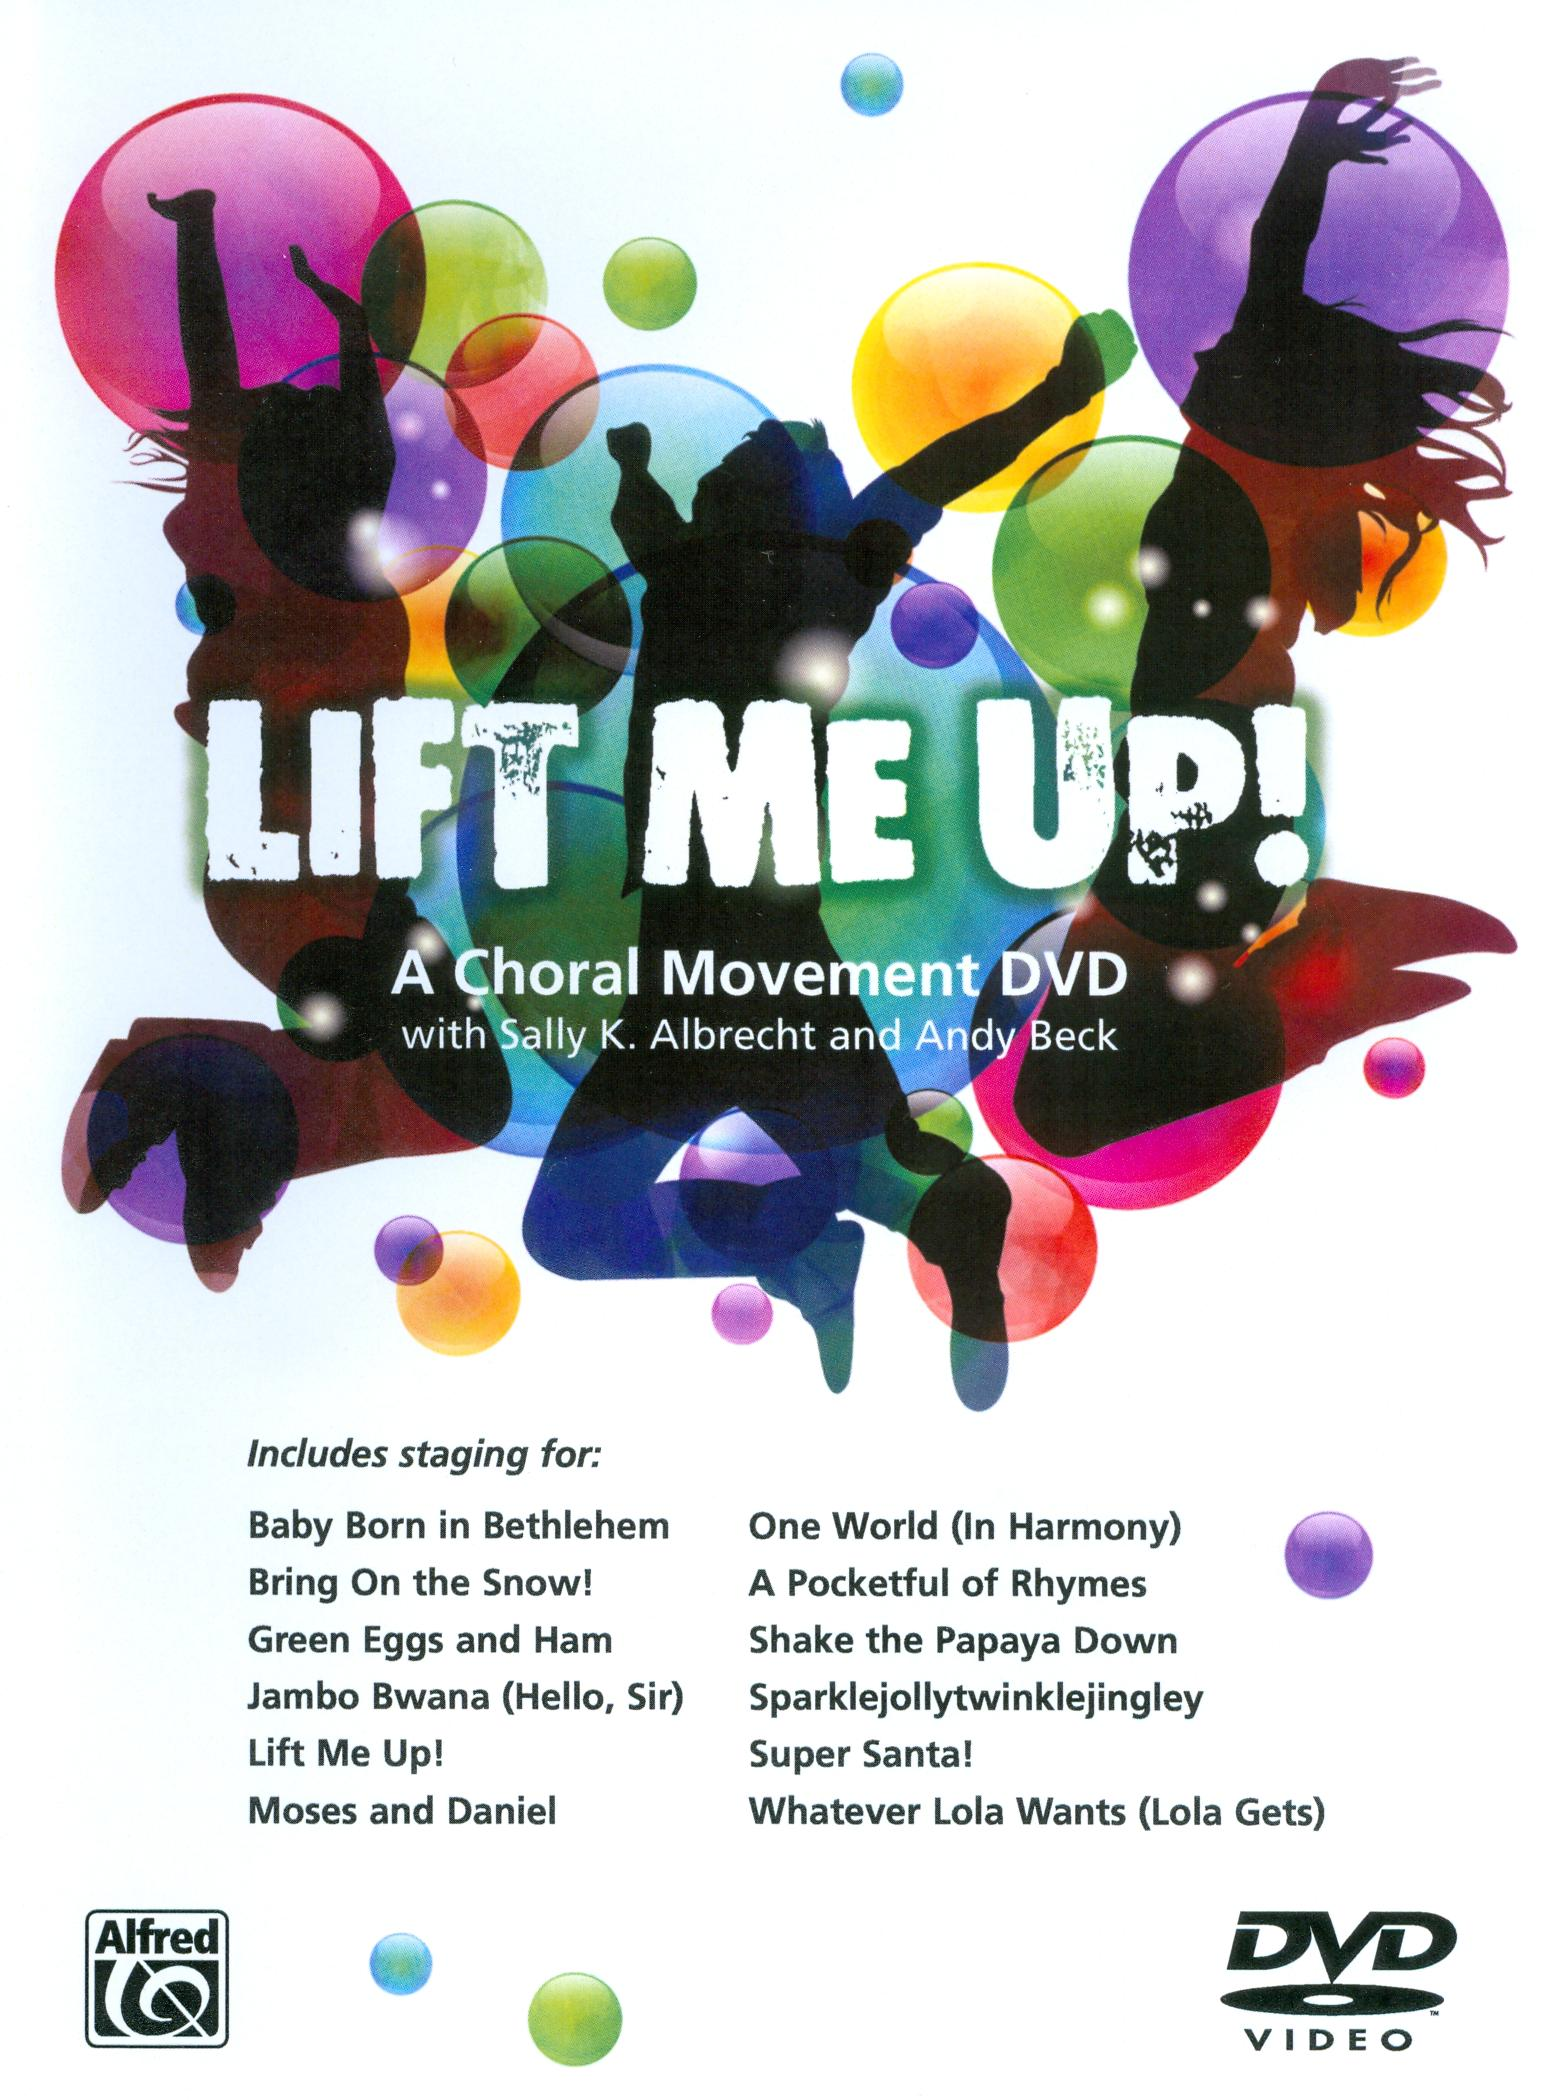 Lift Me Up! A Choral Movement